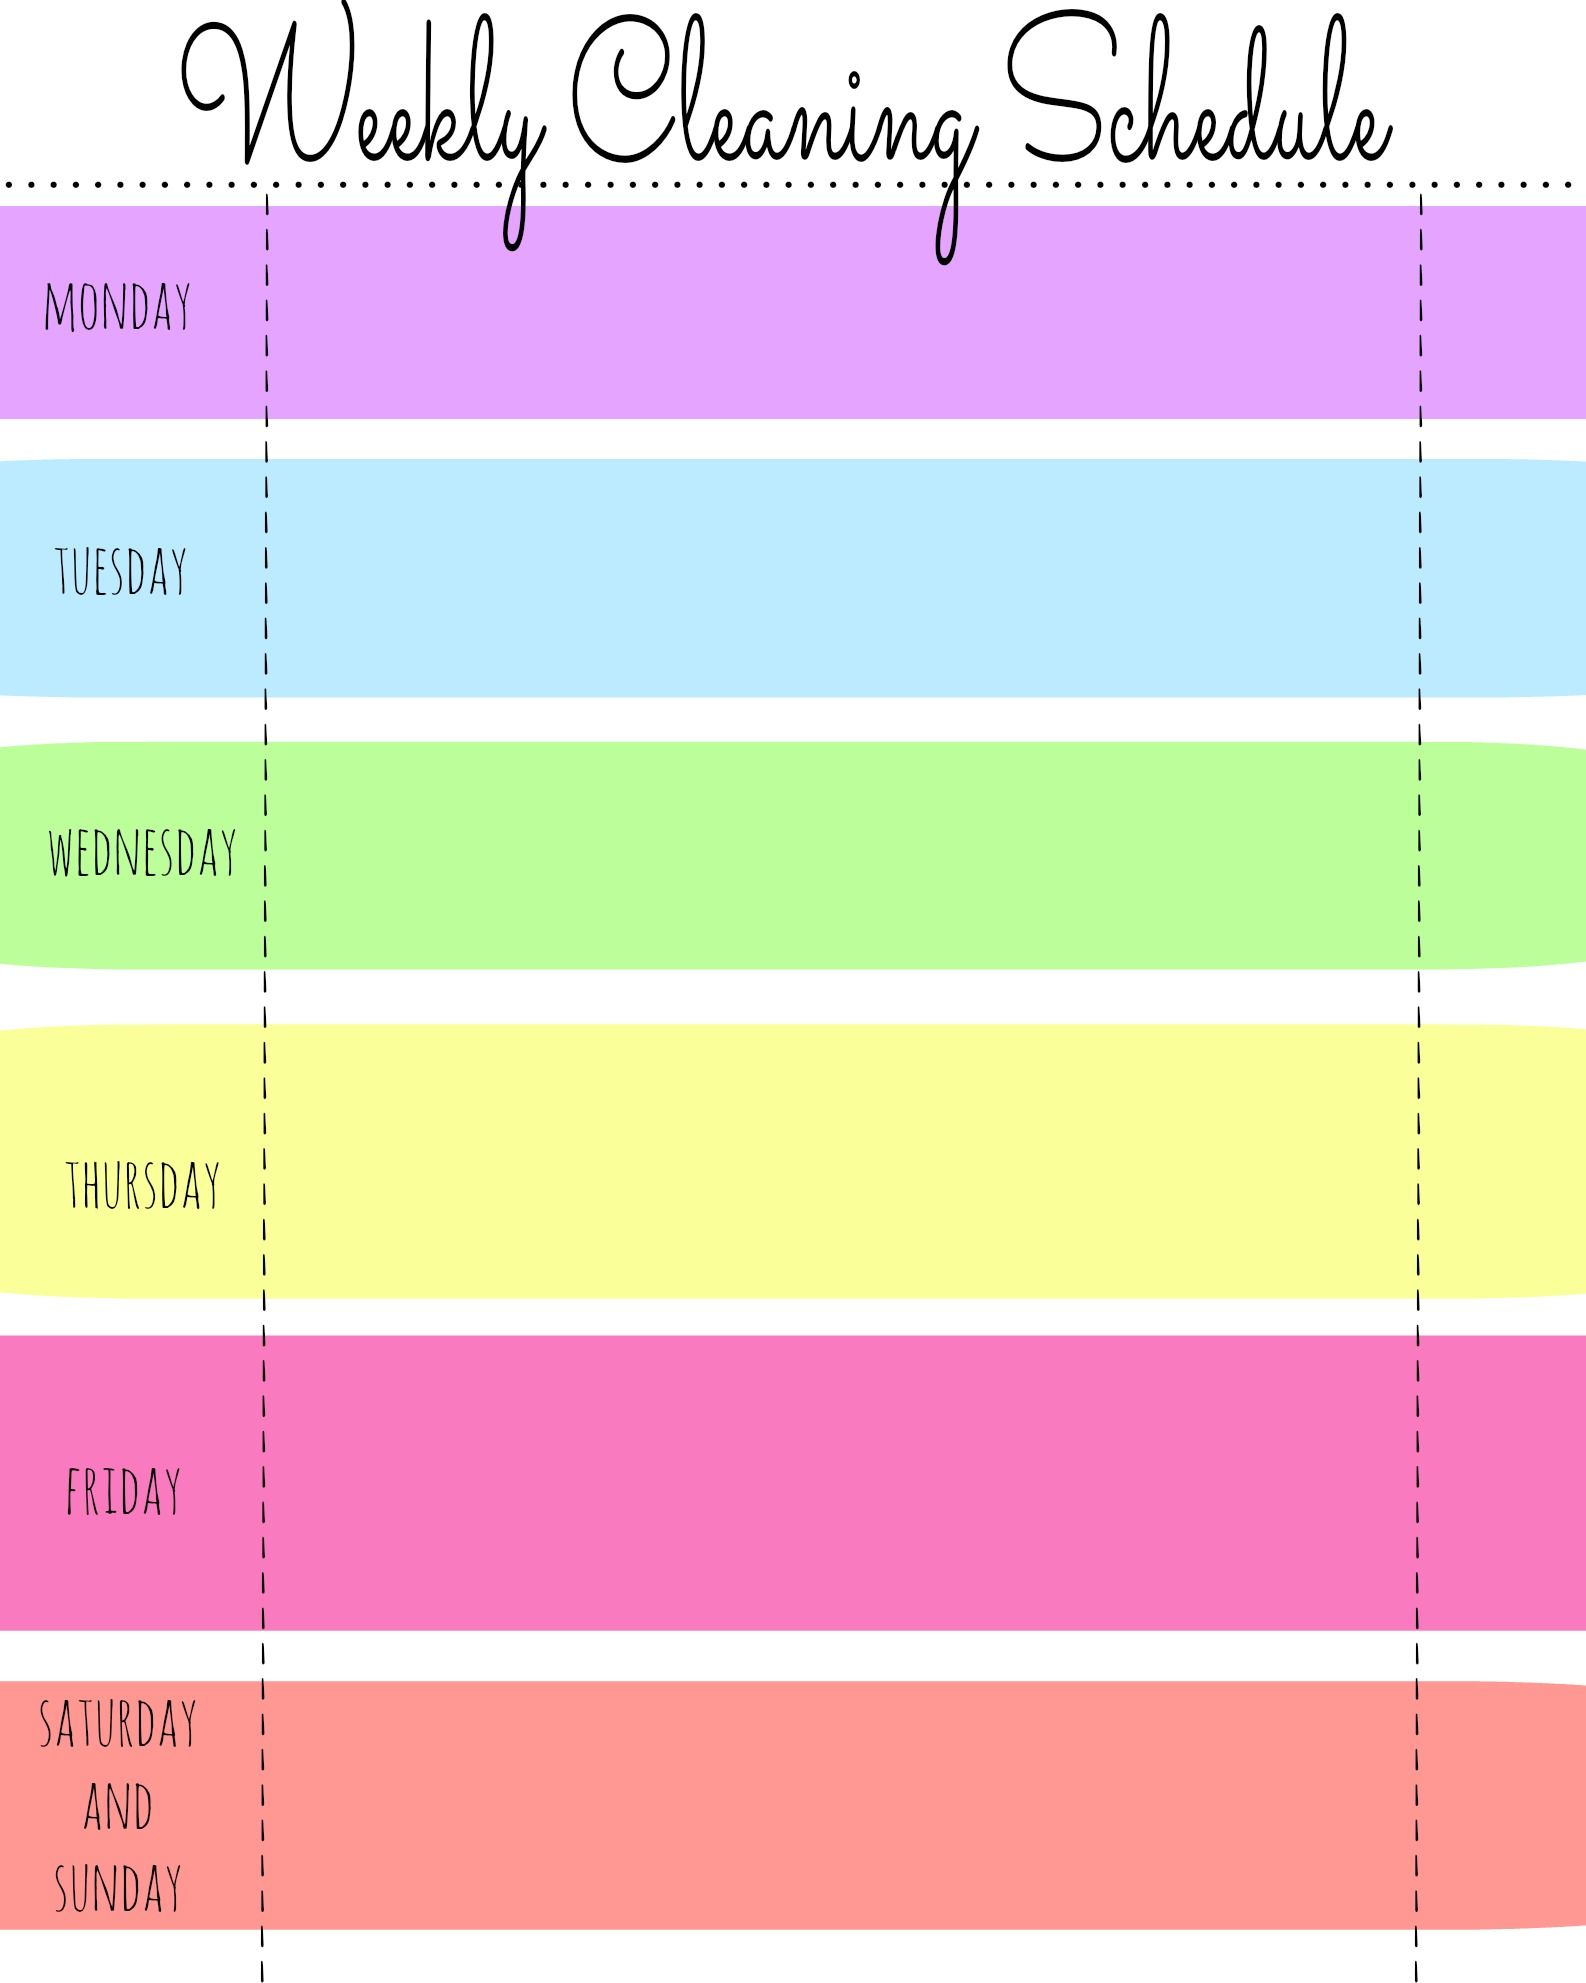 Free Printable Blank Weekly Cleaning Schedule